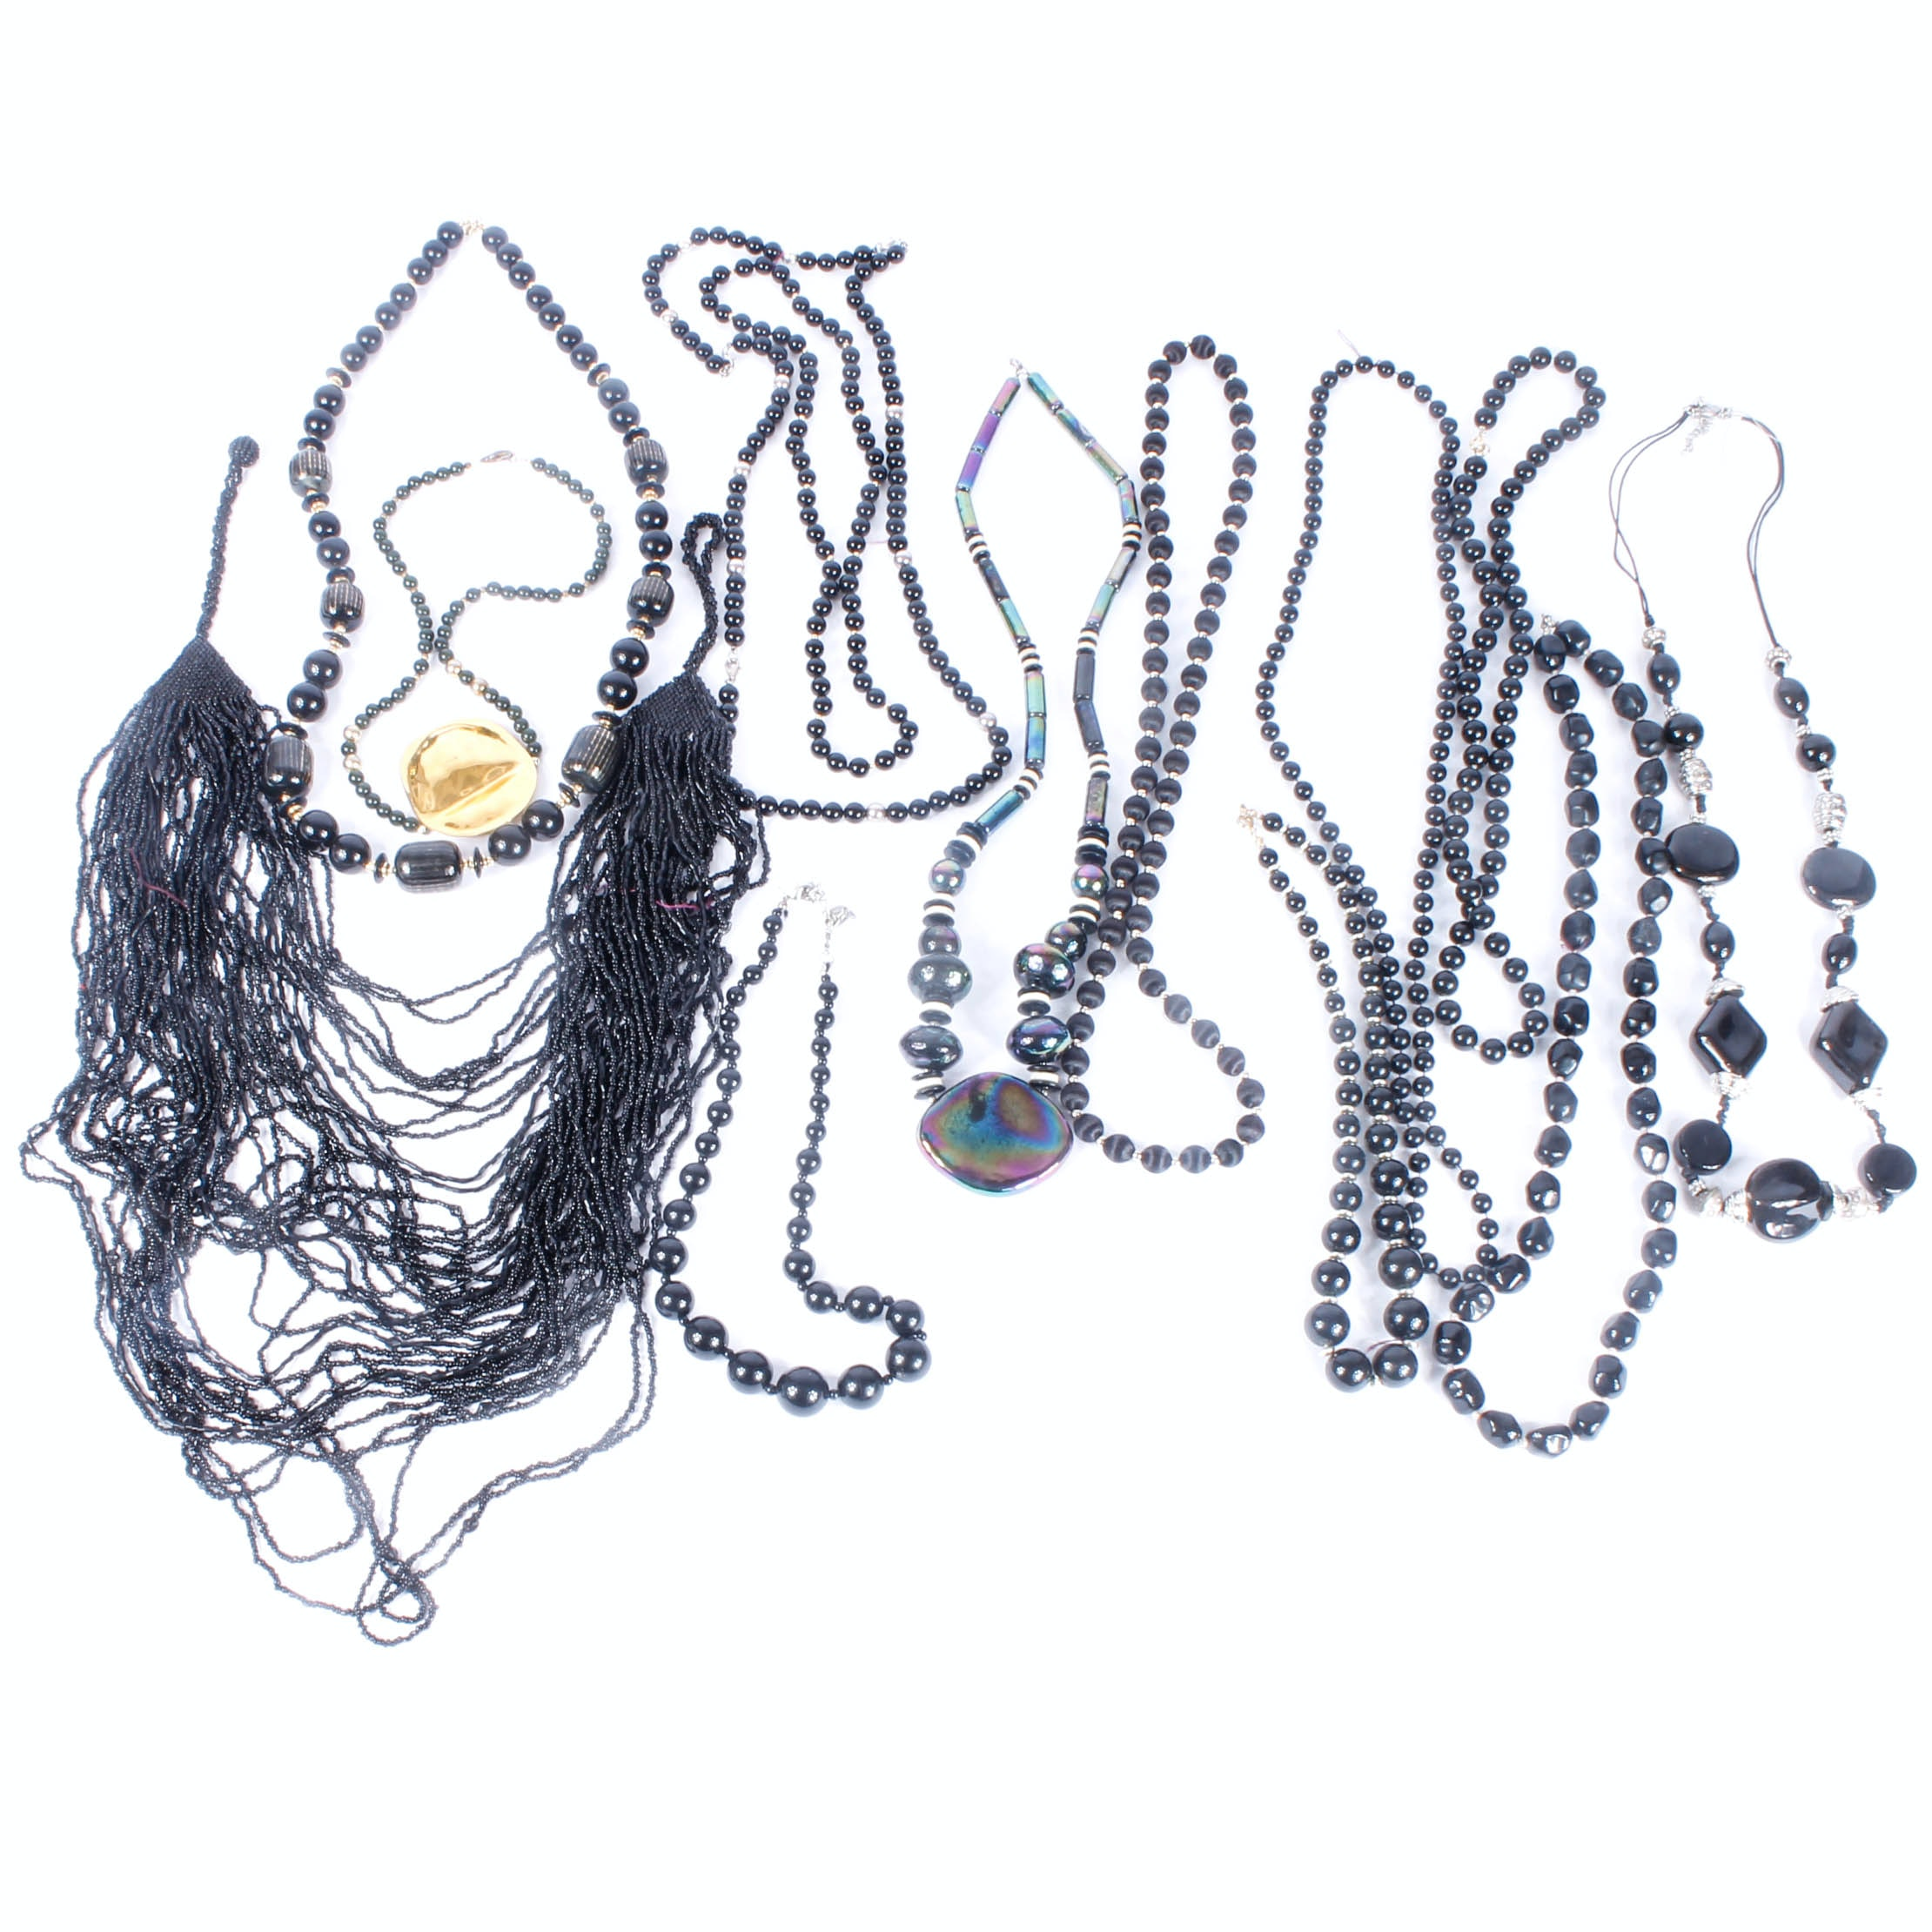 Variety of Black Beaded Necklaces